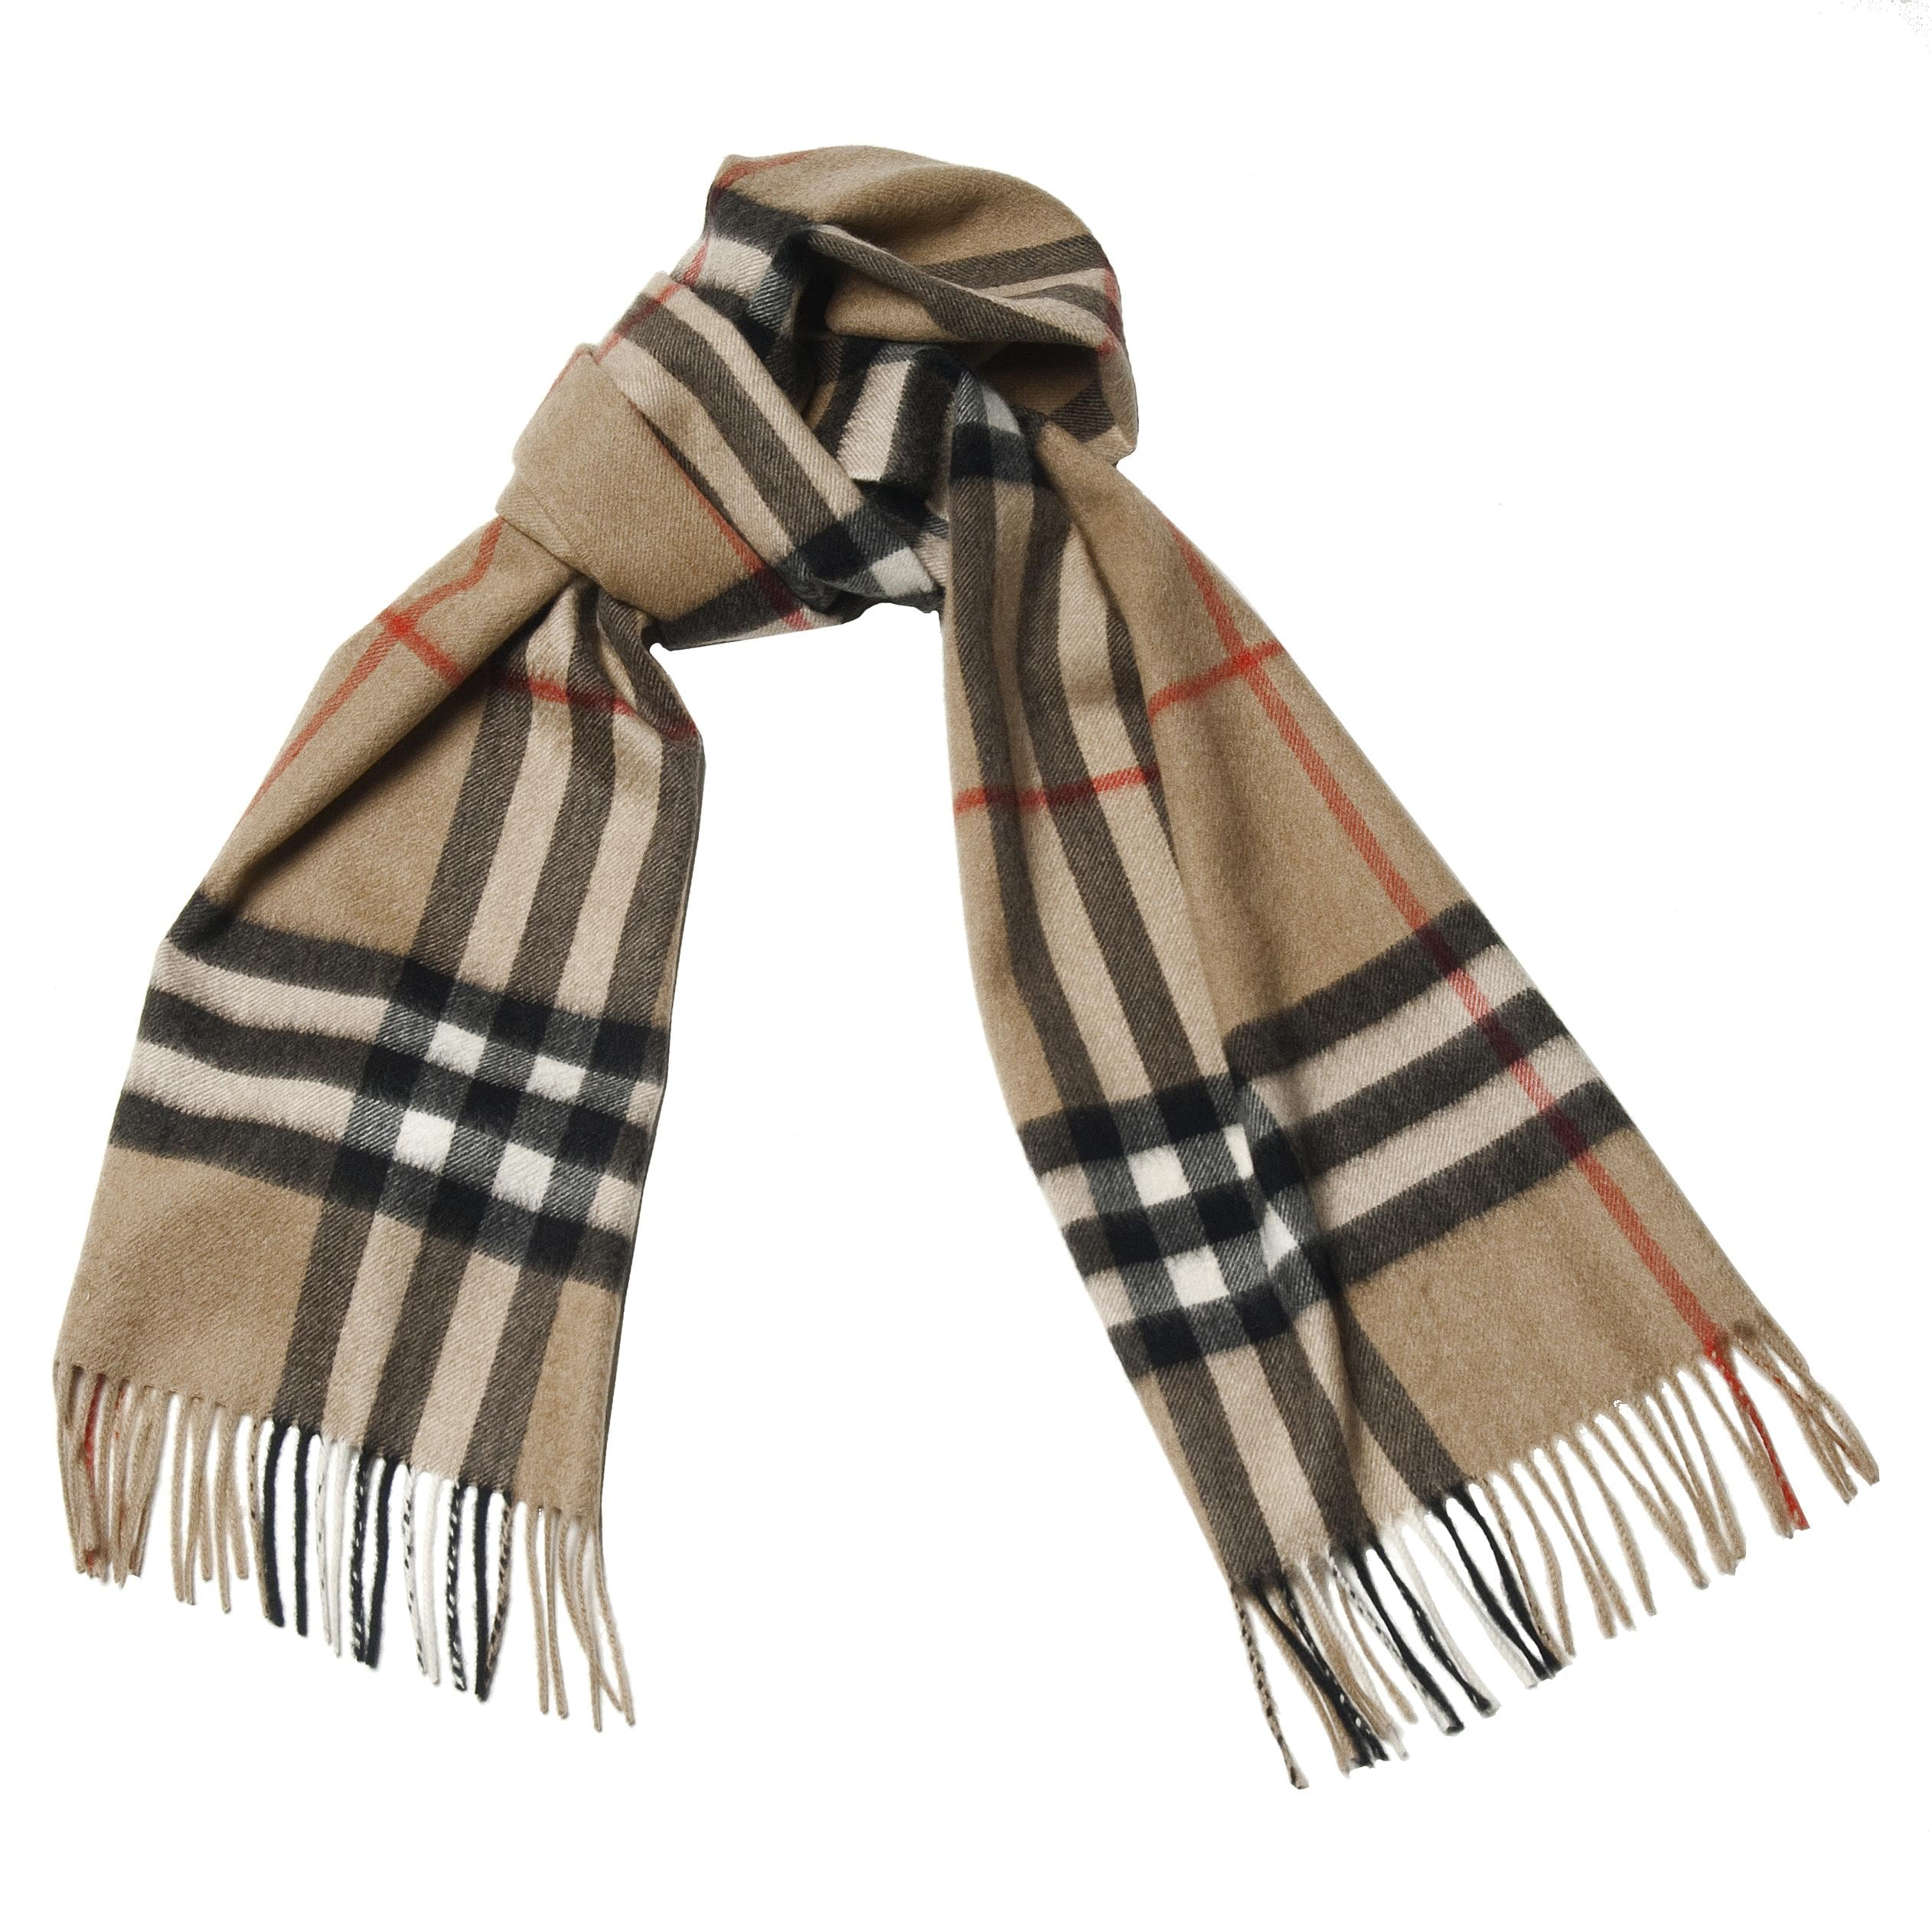 Burberry Plaid Camel Cashmere Scarf  JustCampus Burberry Scarves For Women